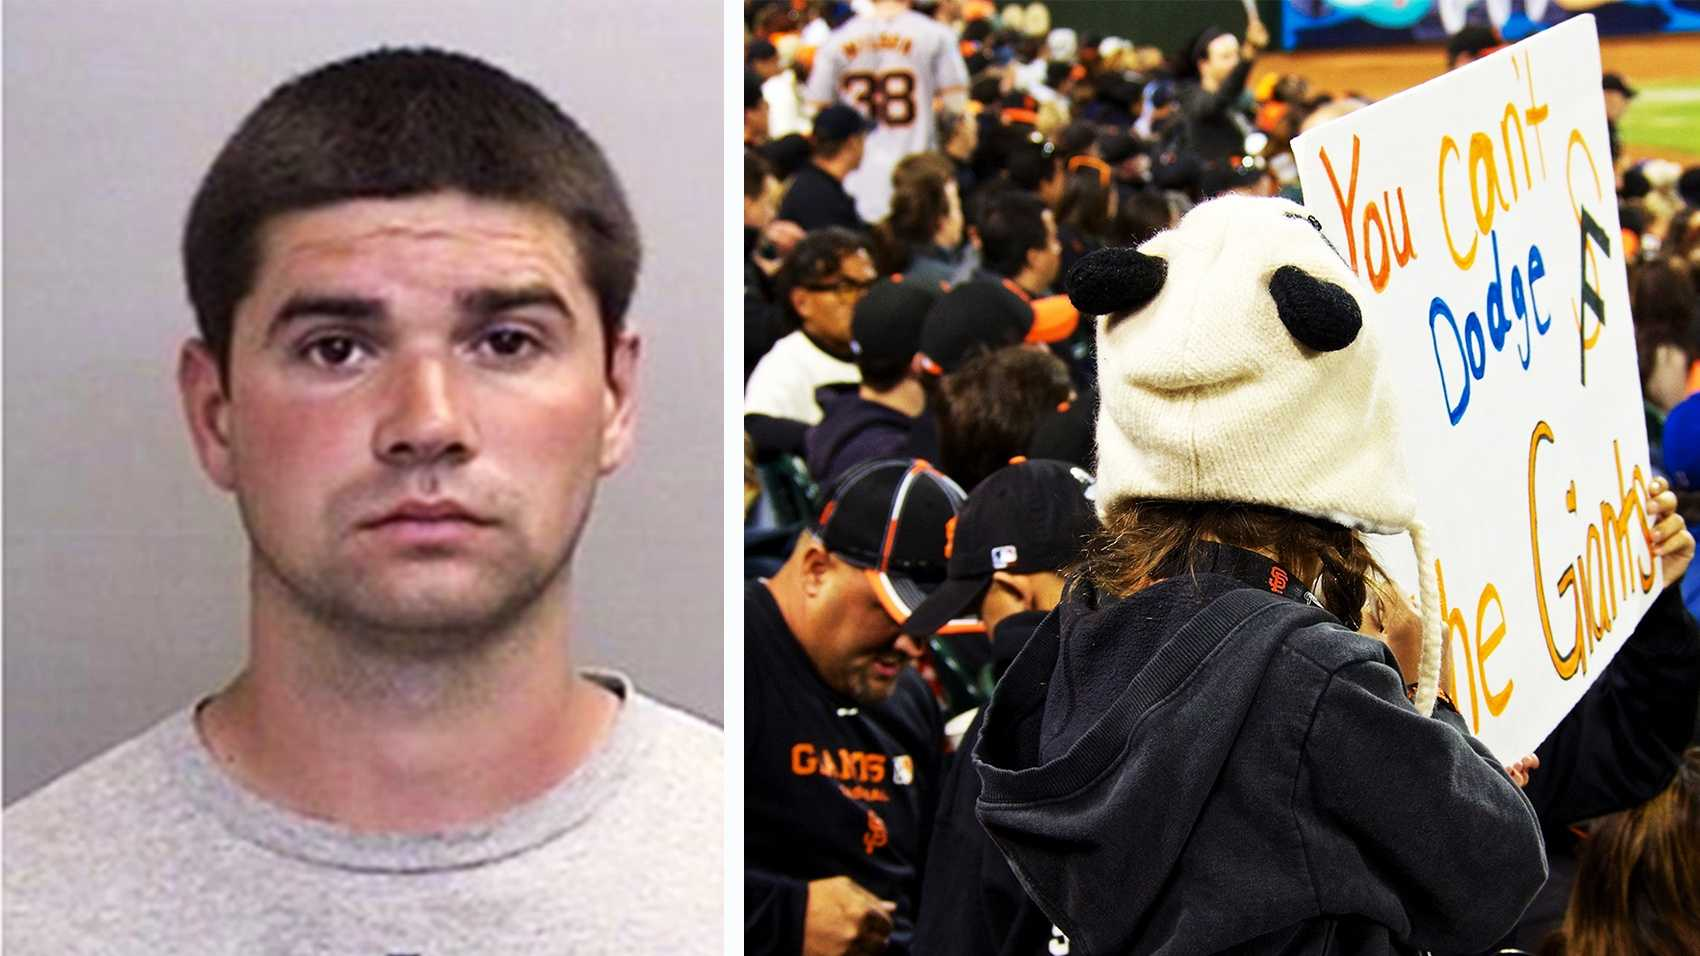 Jonathan Denver, 24, was killed after Wednesday's Giants game in San Francisco.